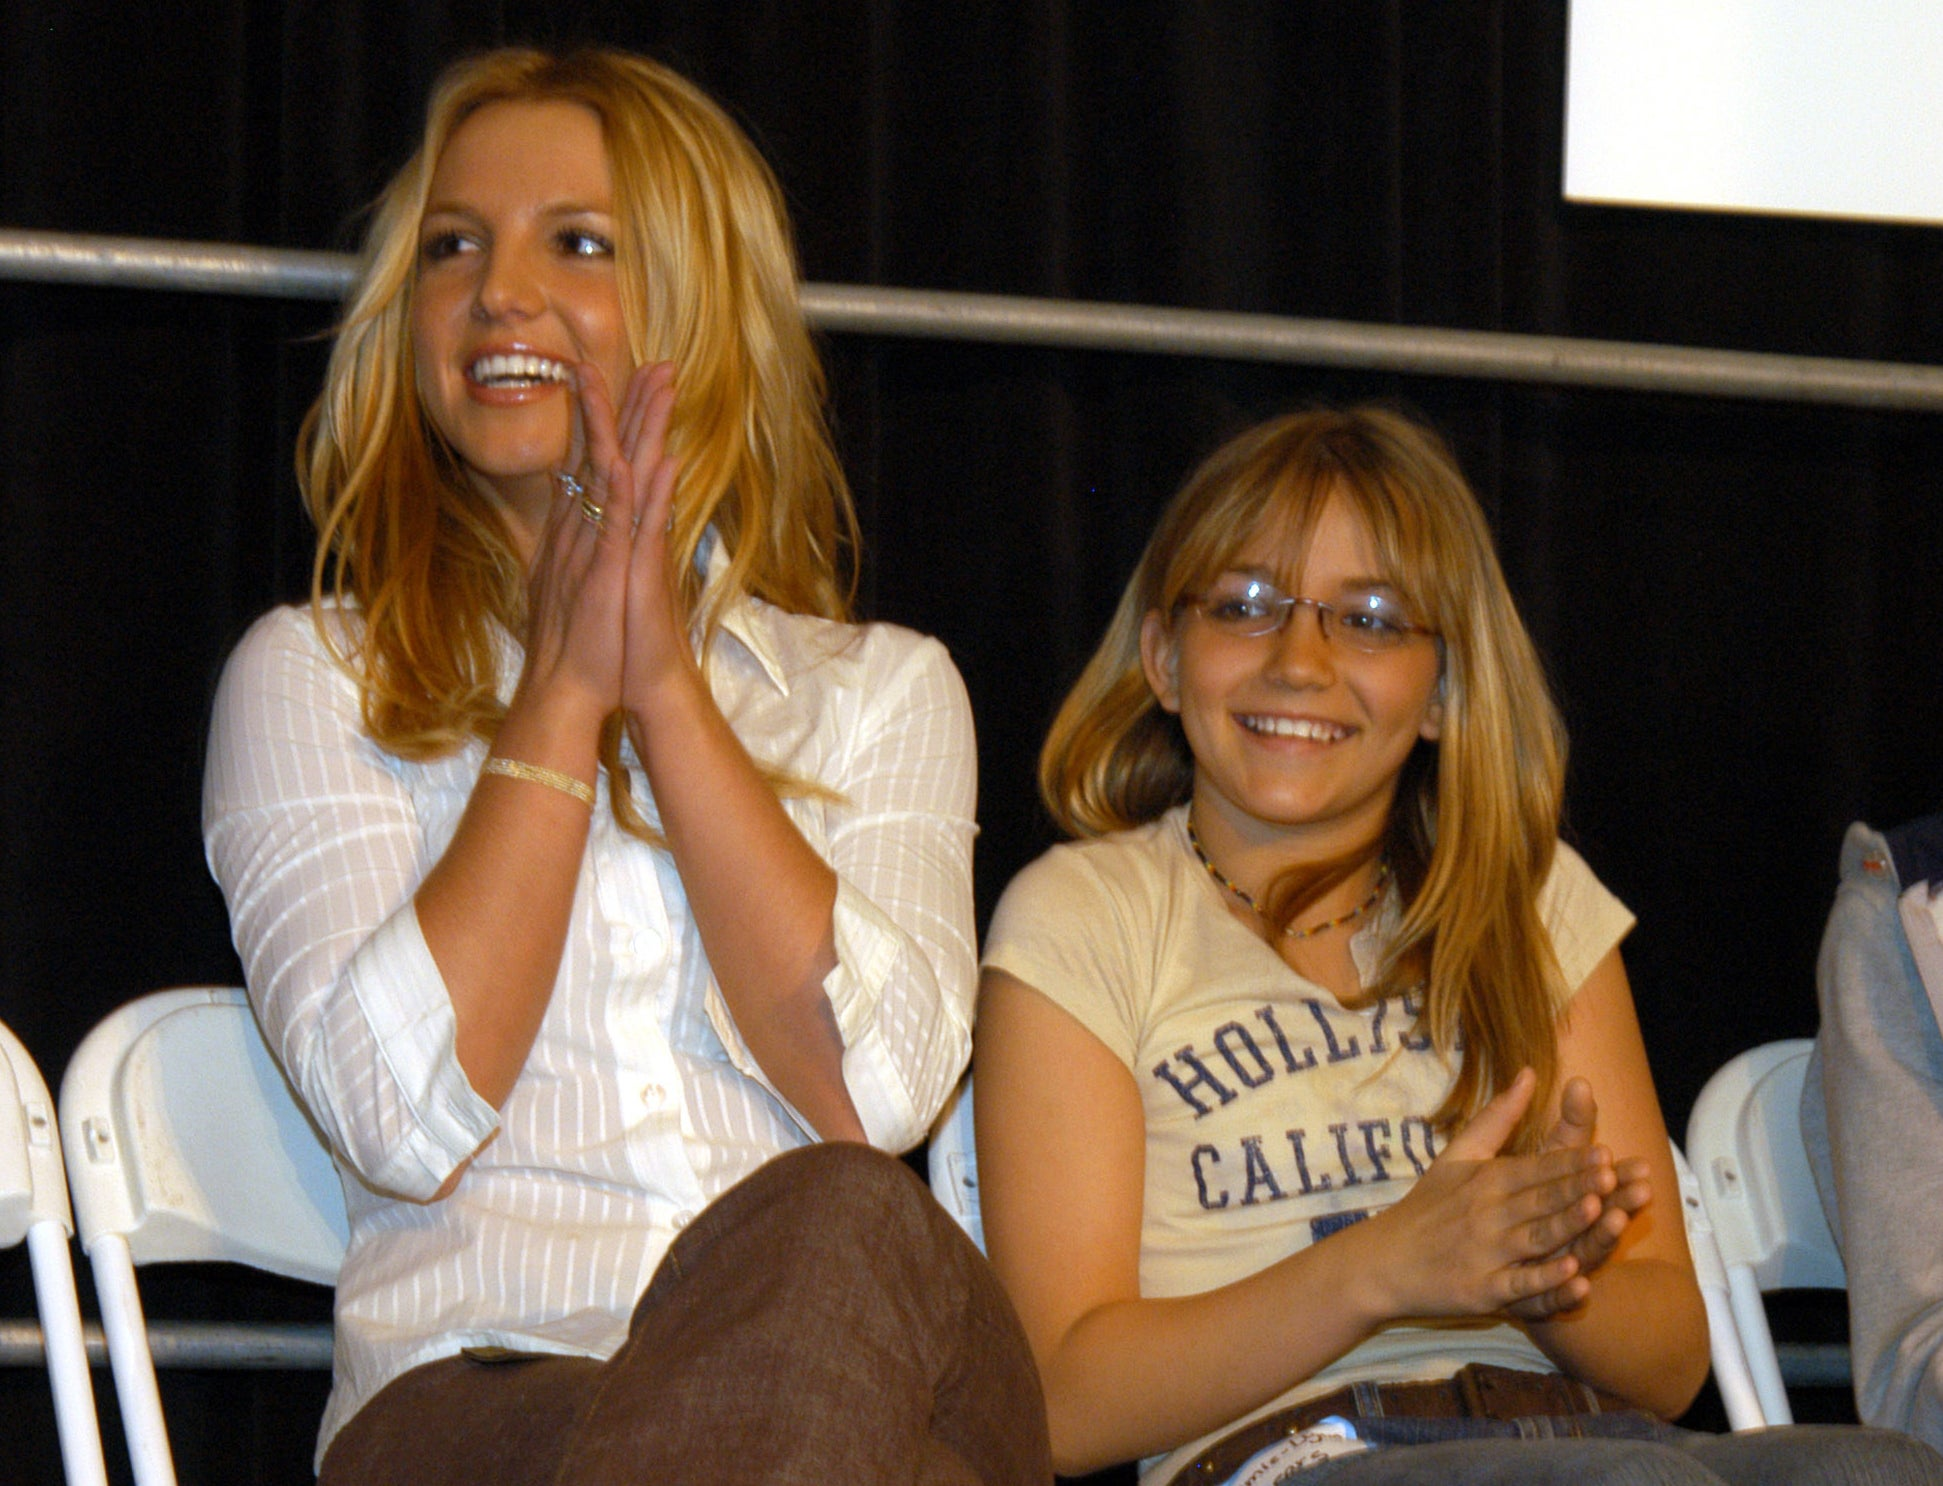 Britney claps while a young Jamie Lynn sits next to her at an event